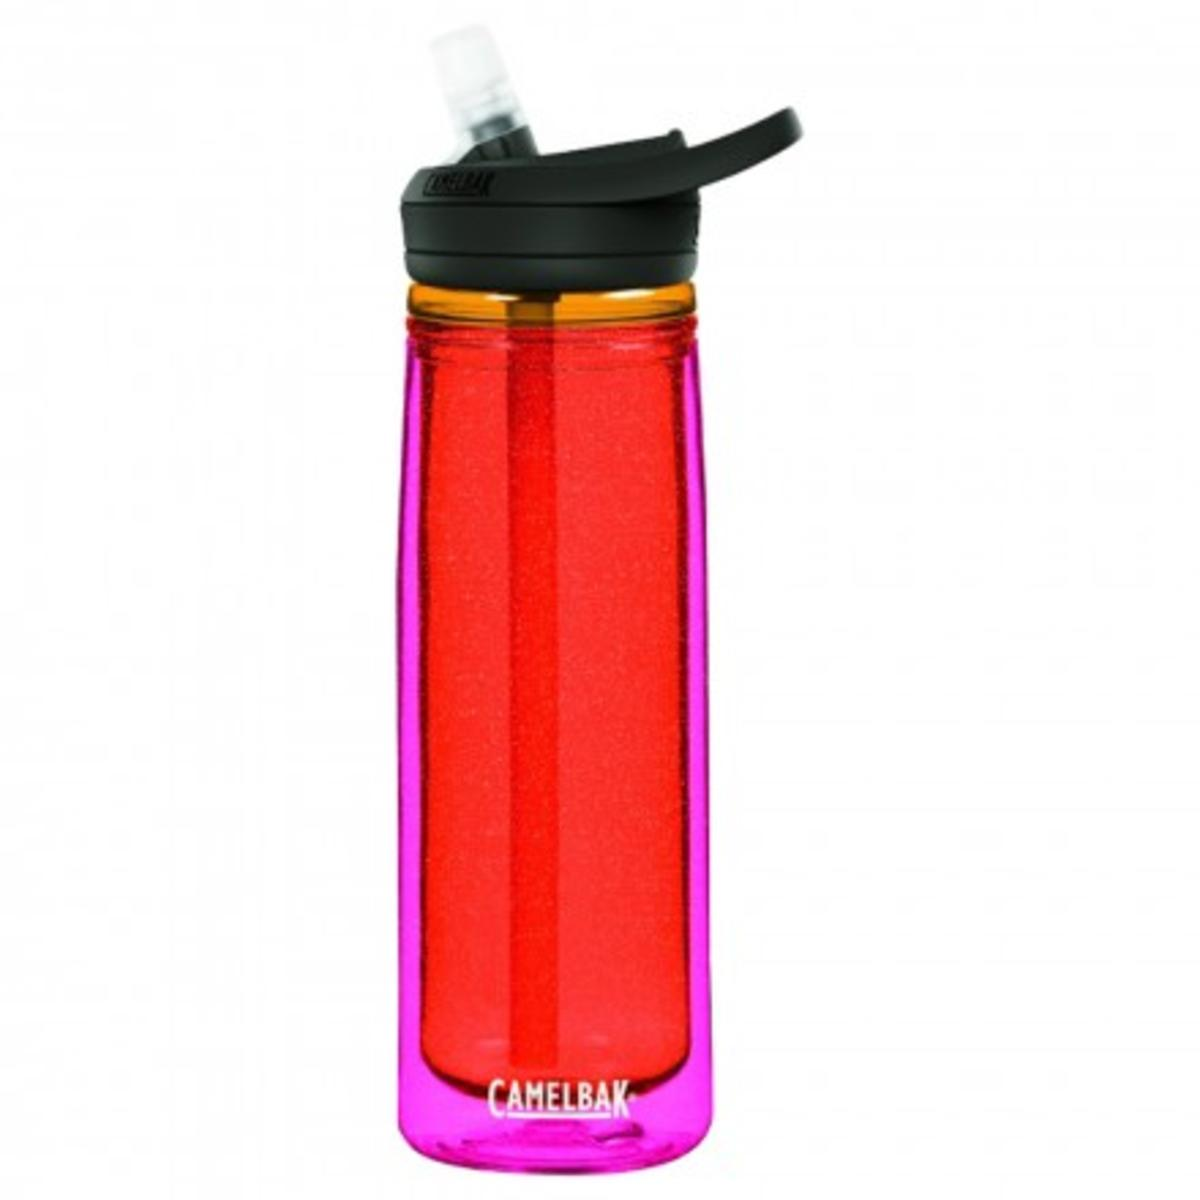 Camelbak eddy+ 20oz Insulated Bottle